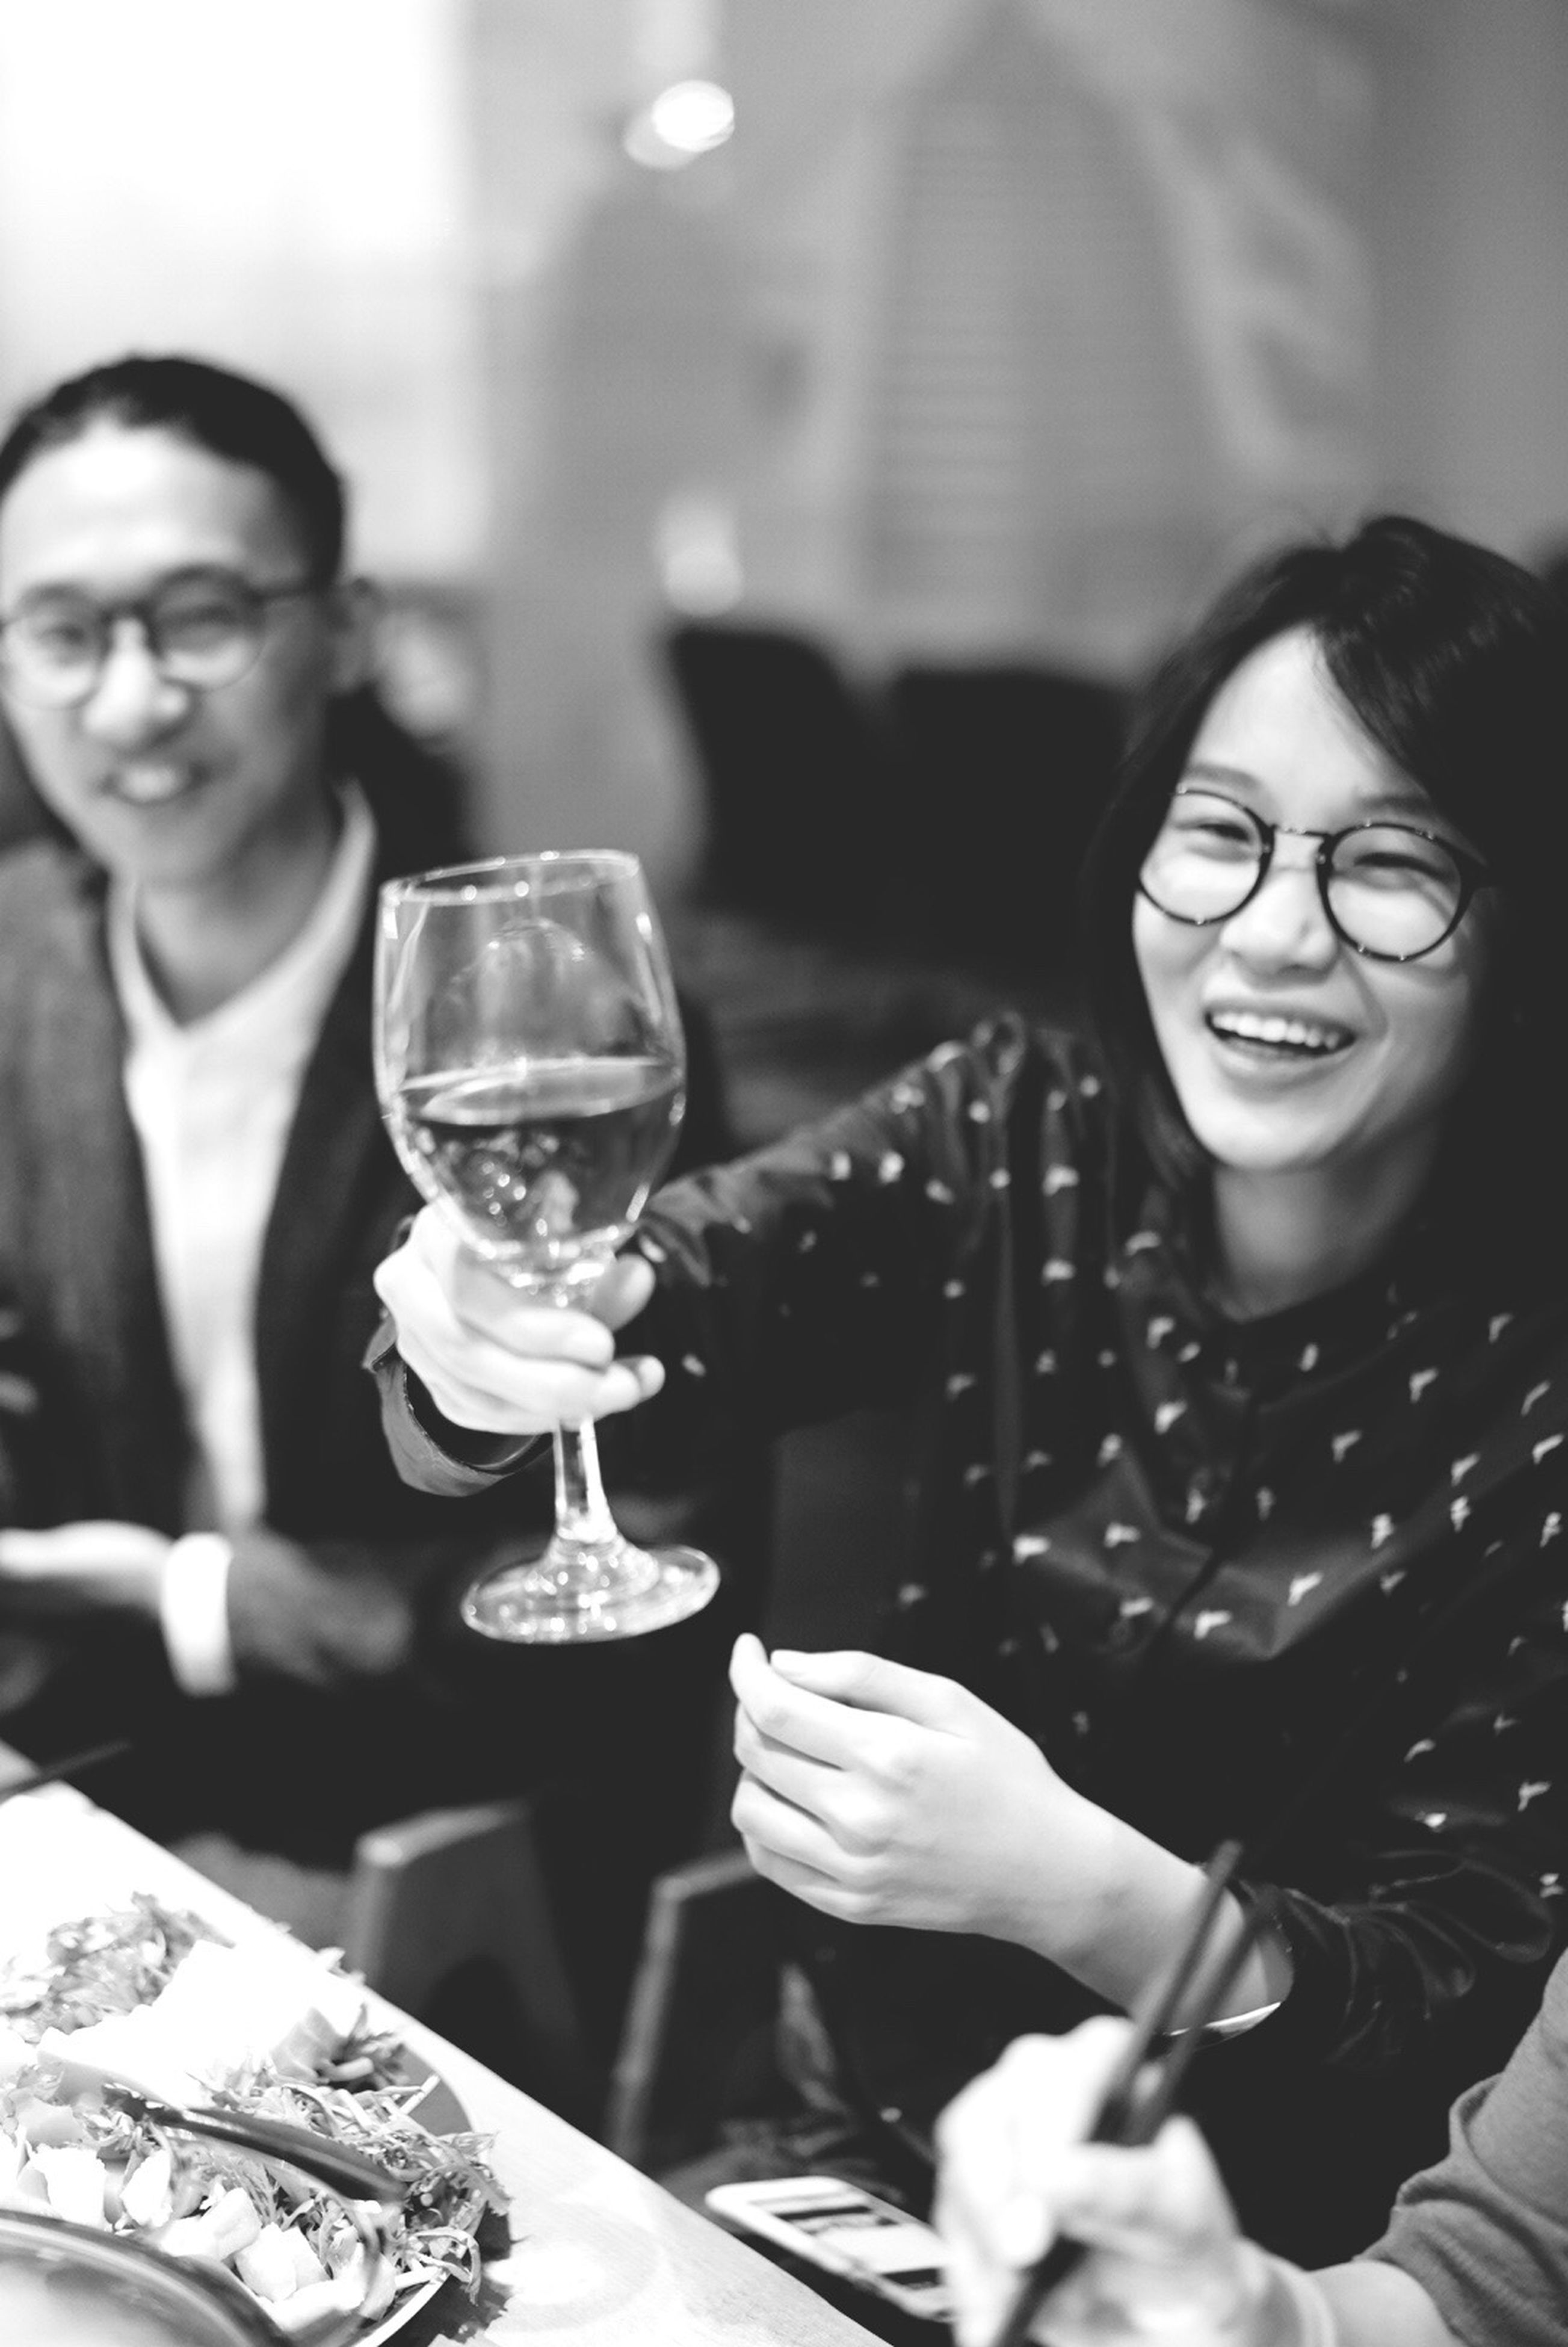 two people, smiling, wine, wineglass, sitting, togetherness, women, real people, happiness, lifestyles, focus on foreground, cheerful, holding, enjoyment, drink, drinking glass, alcohol, indoors, friendship, front view, leisure activity, table, celebratory toast, adult, men, people, bonding, young women, young adult, adults only, only women, night, happy hour